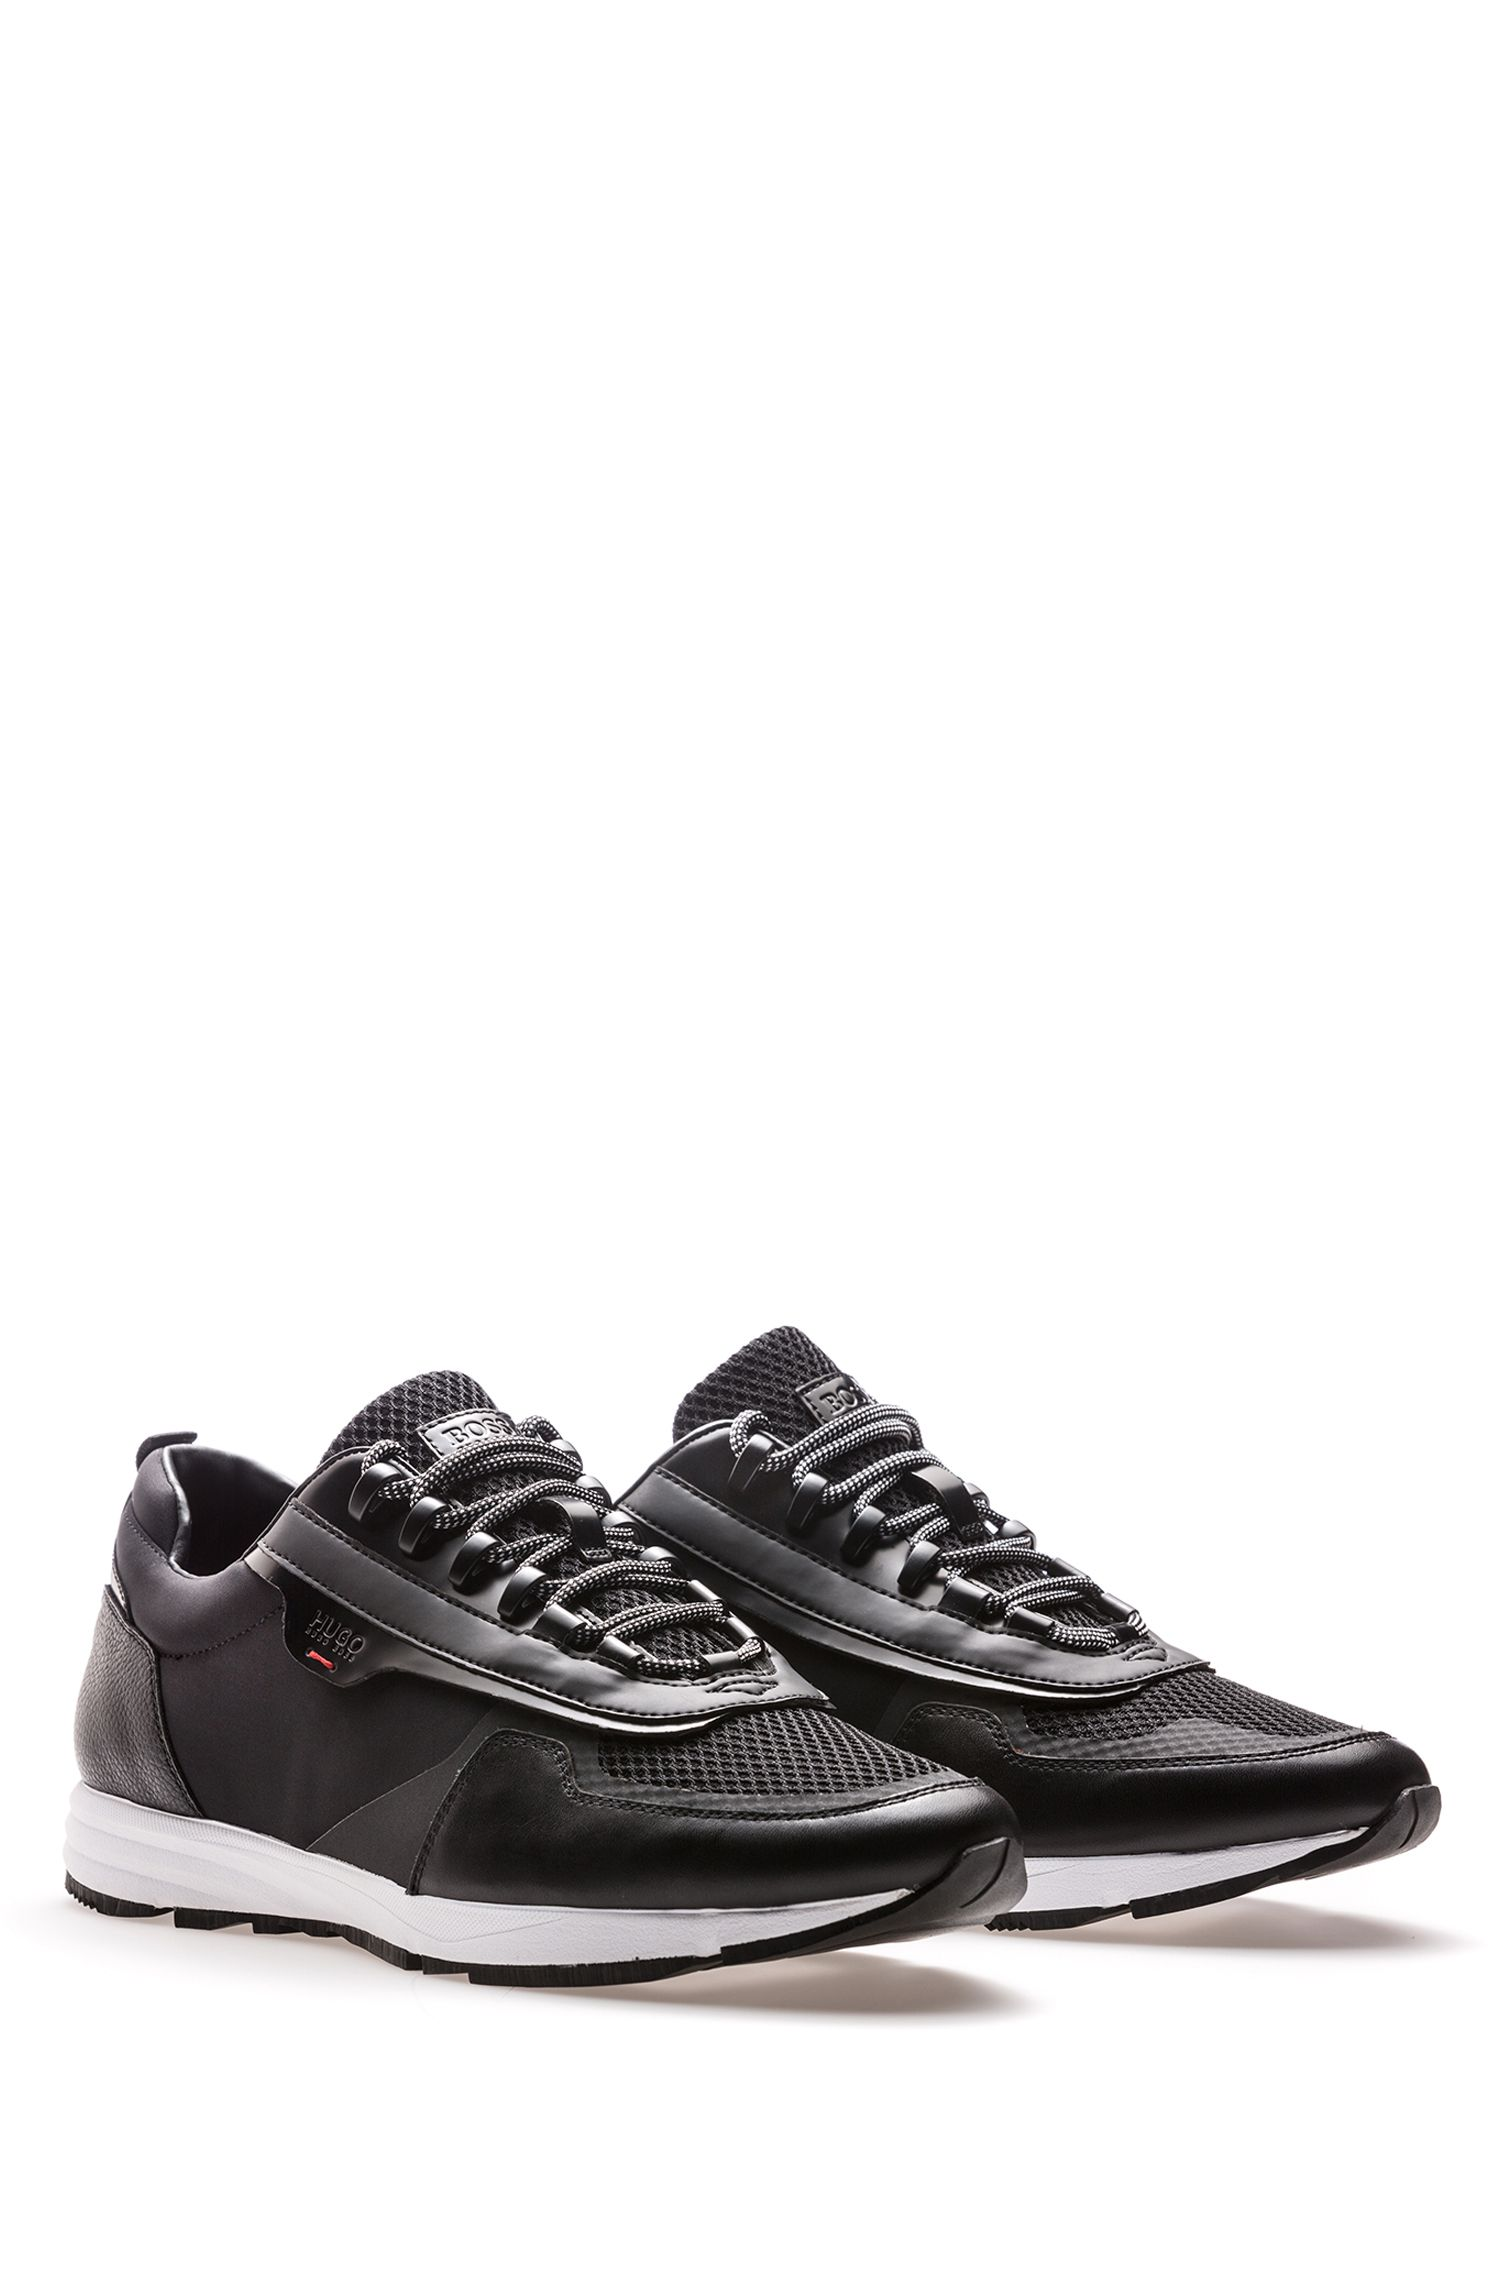 Sneakers stile runner stringate con tomaia ibrida